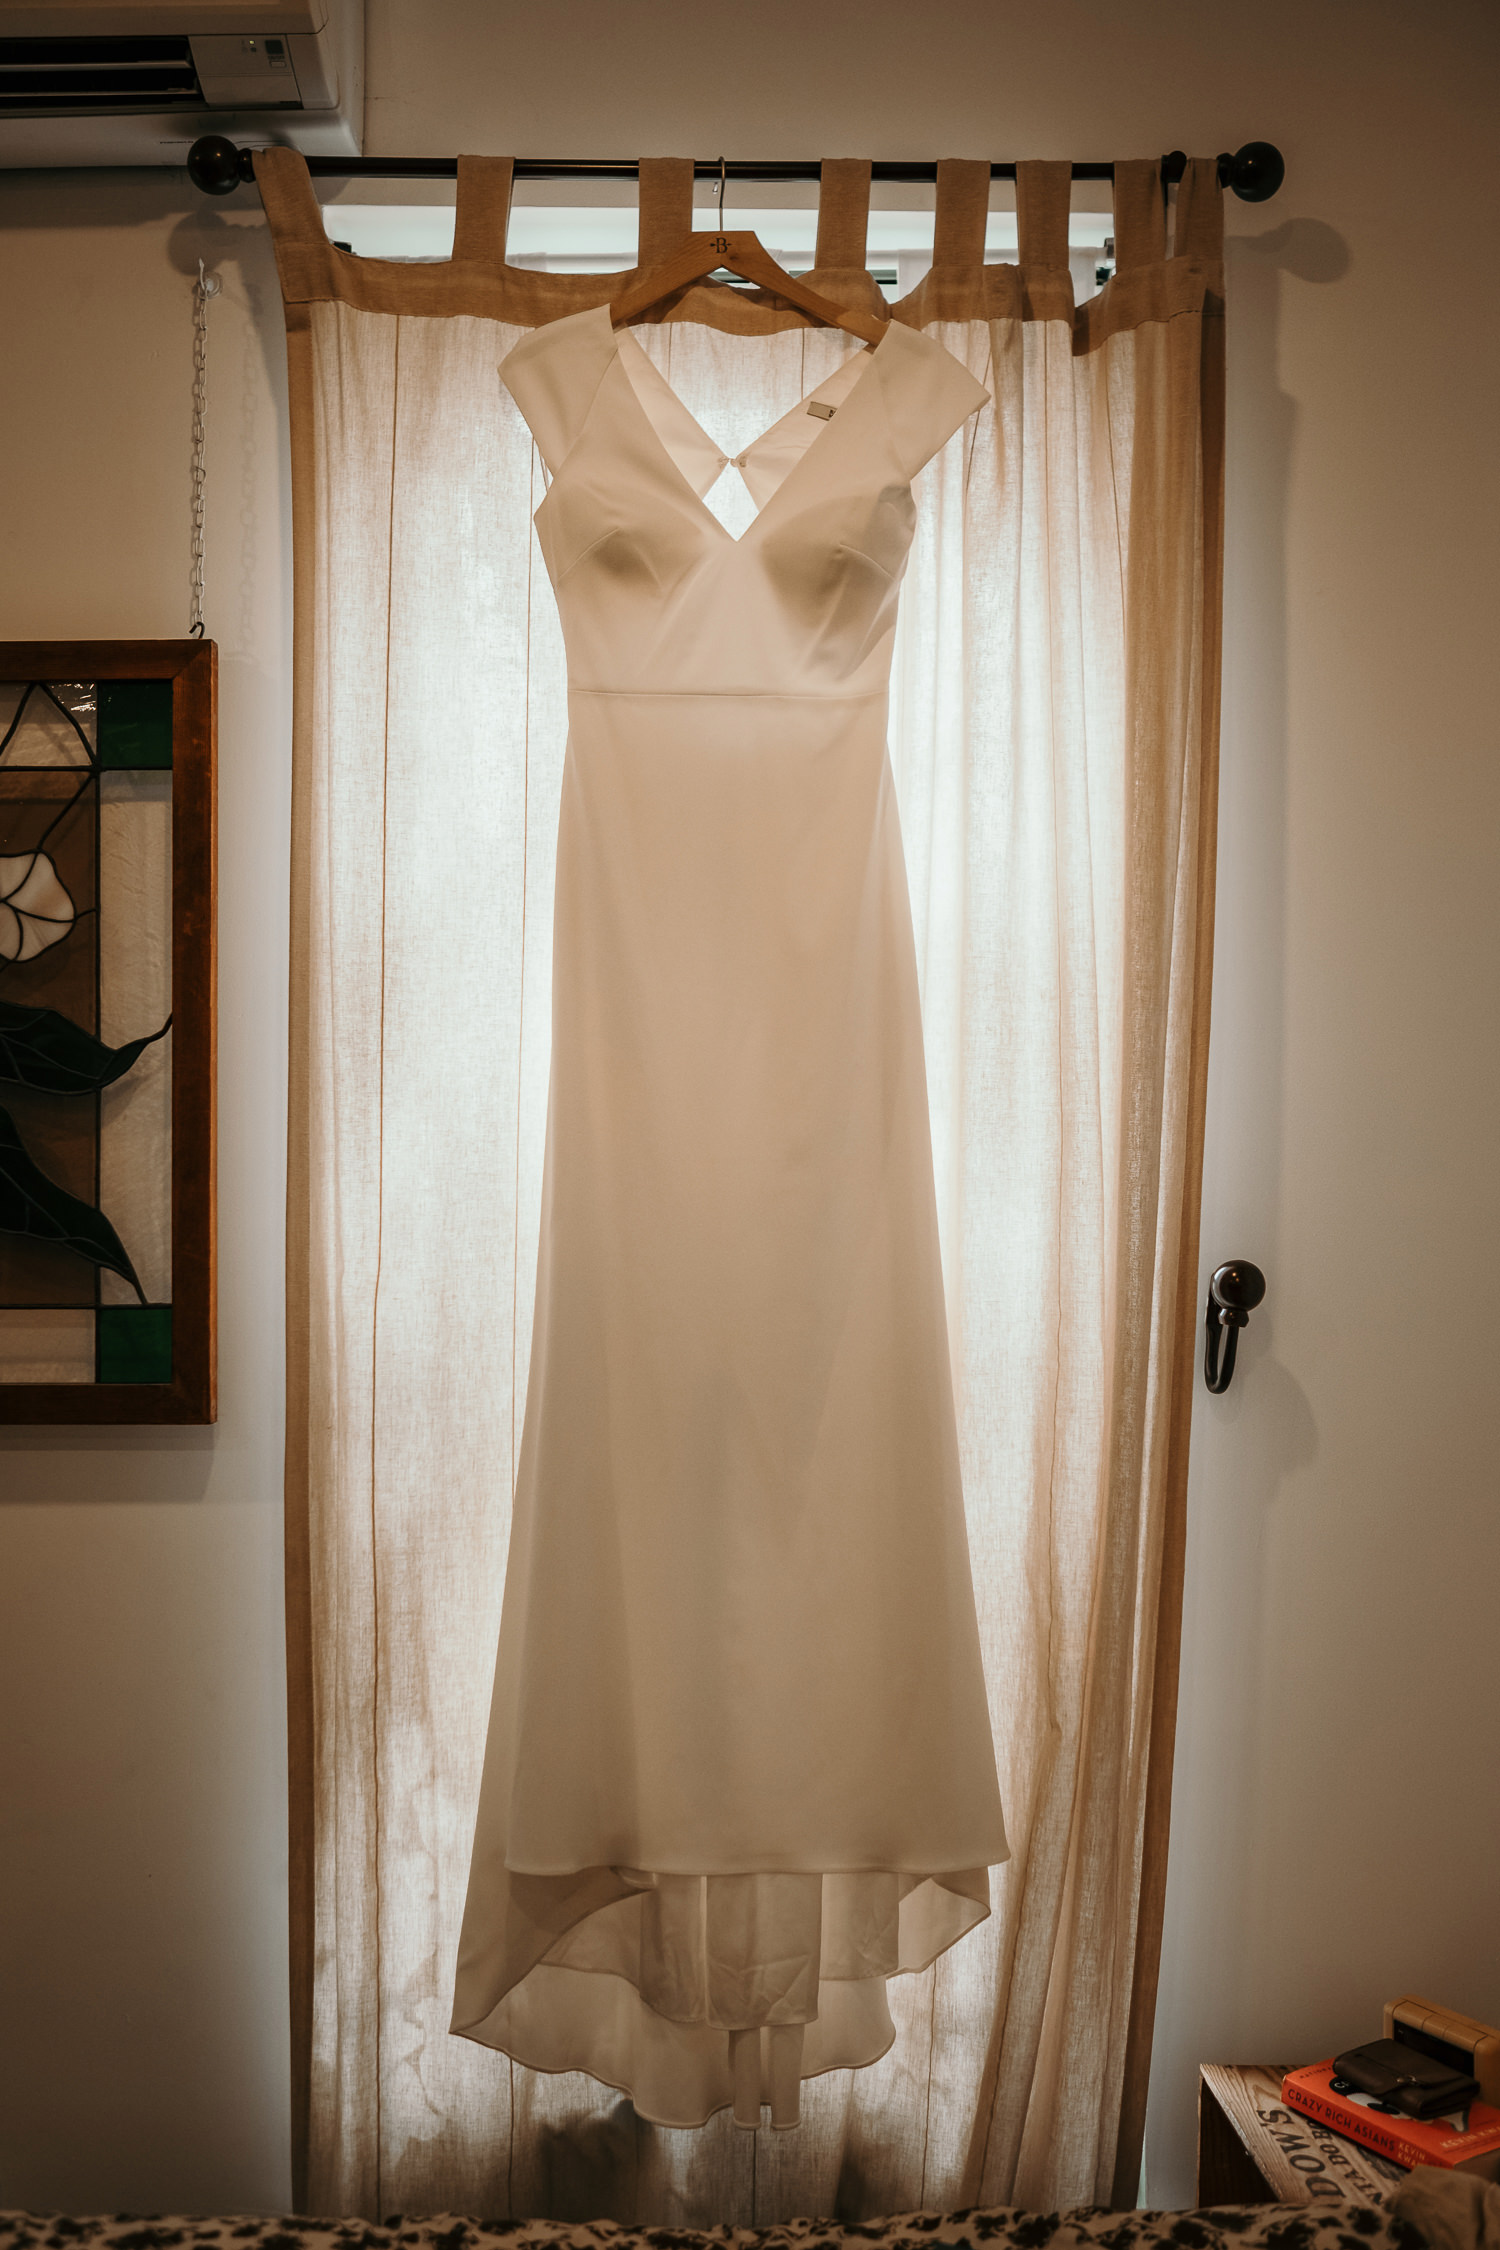 dress hanging on window with back light